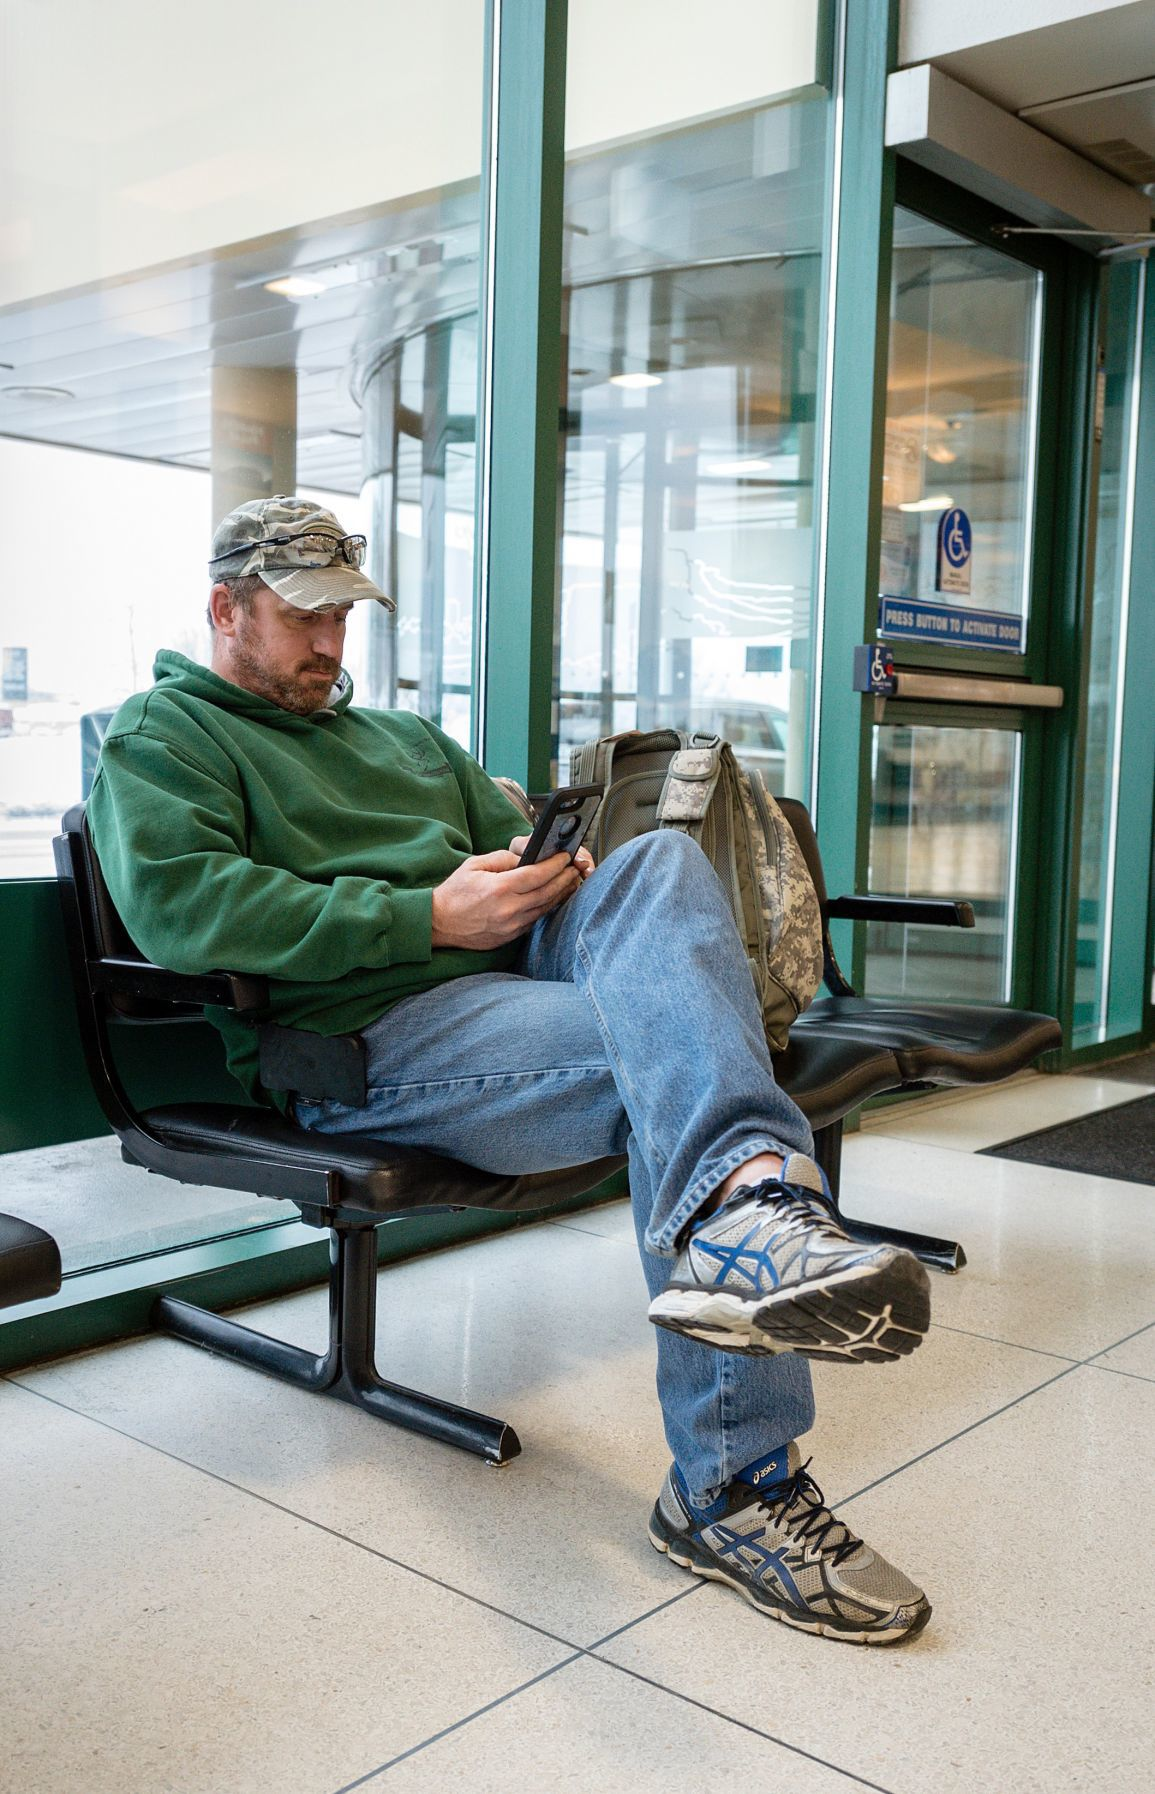 Billings Logan Airport has added Wifi services